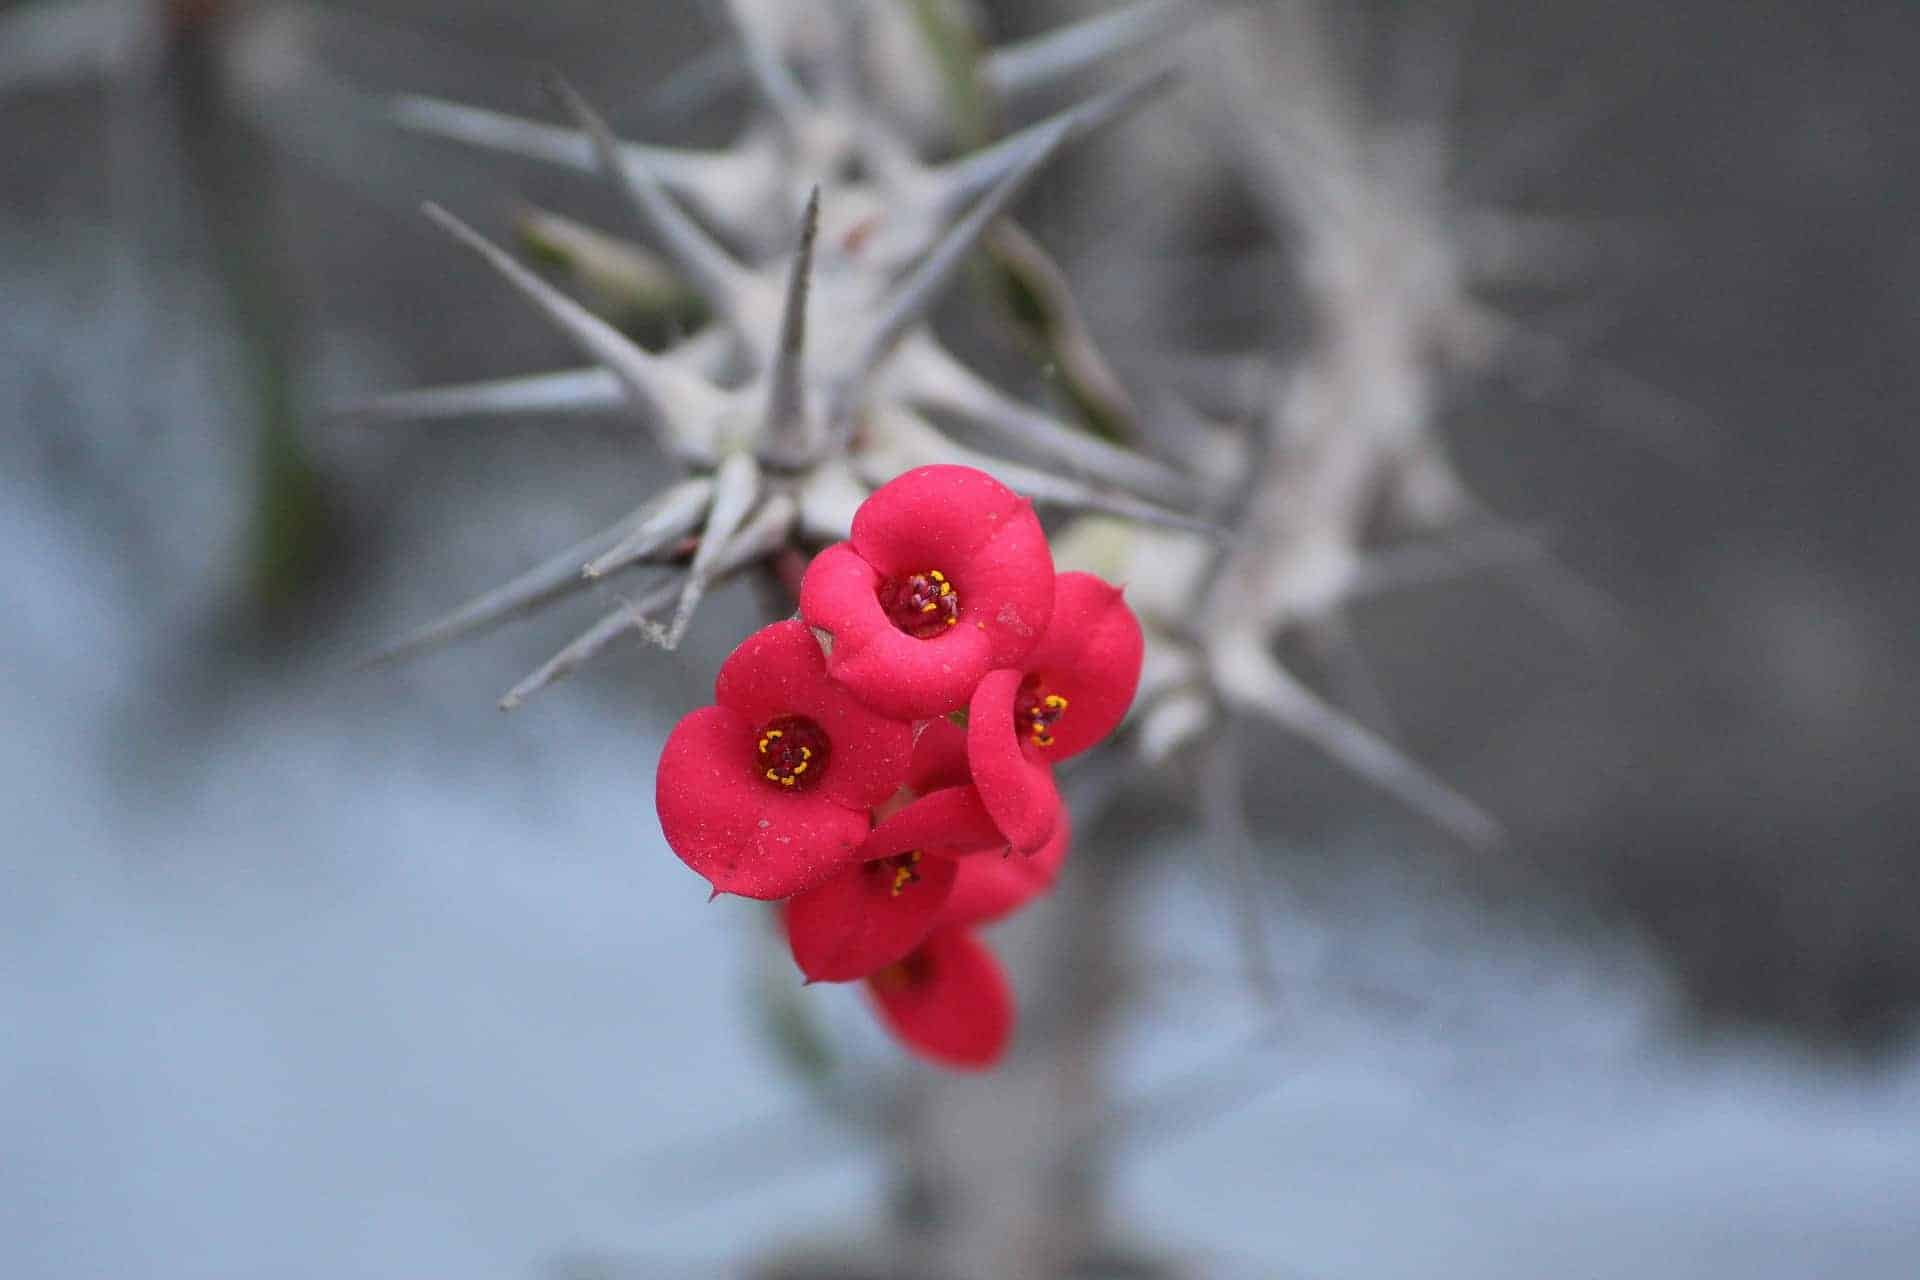 How To Grow And Care For The Euphorbia milii